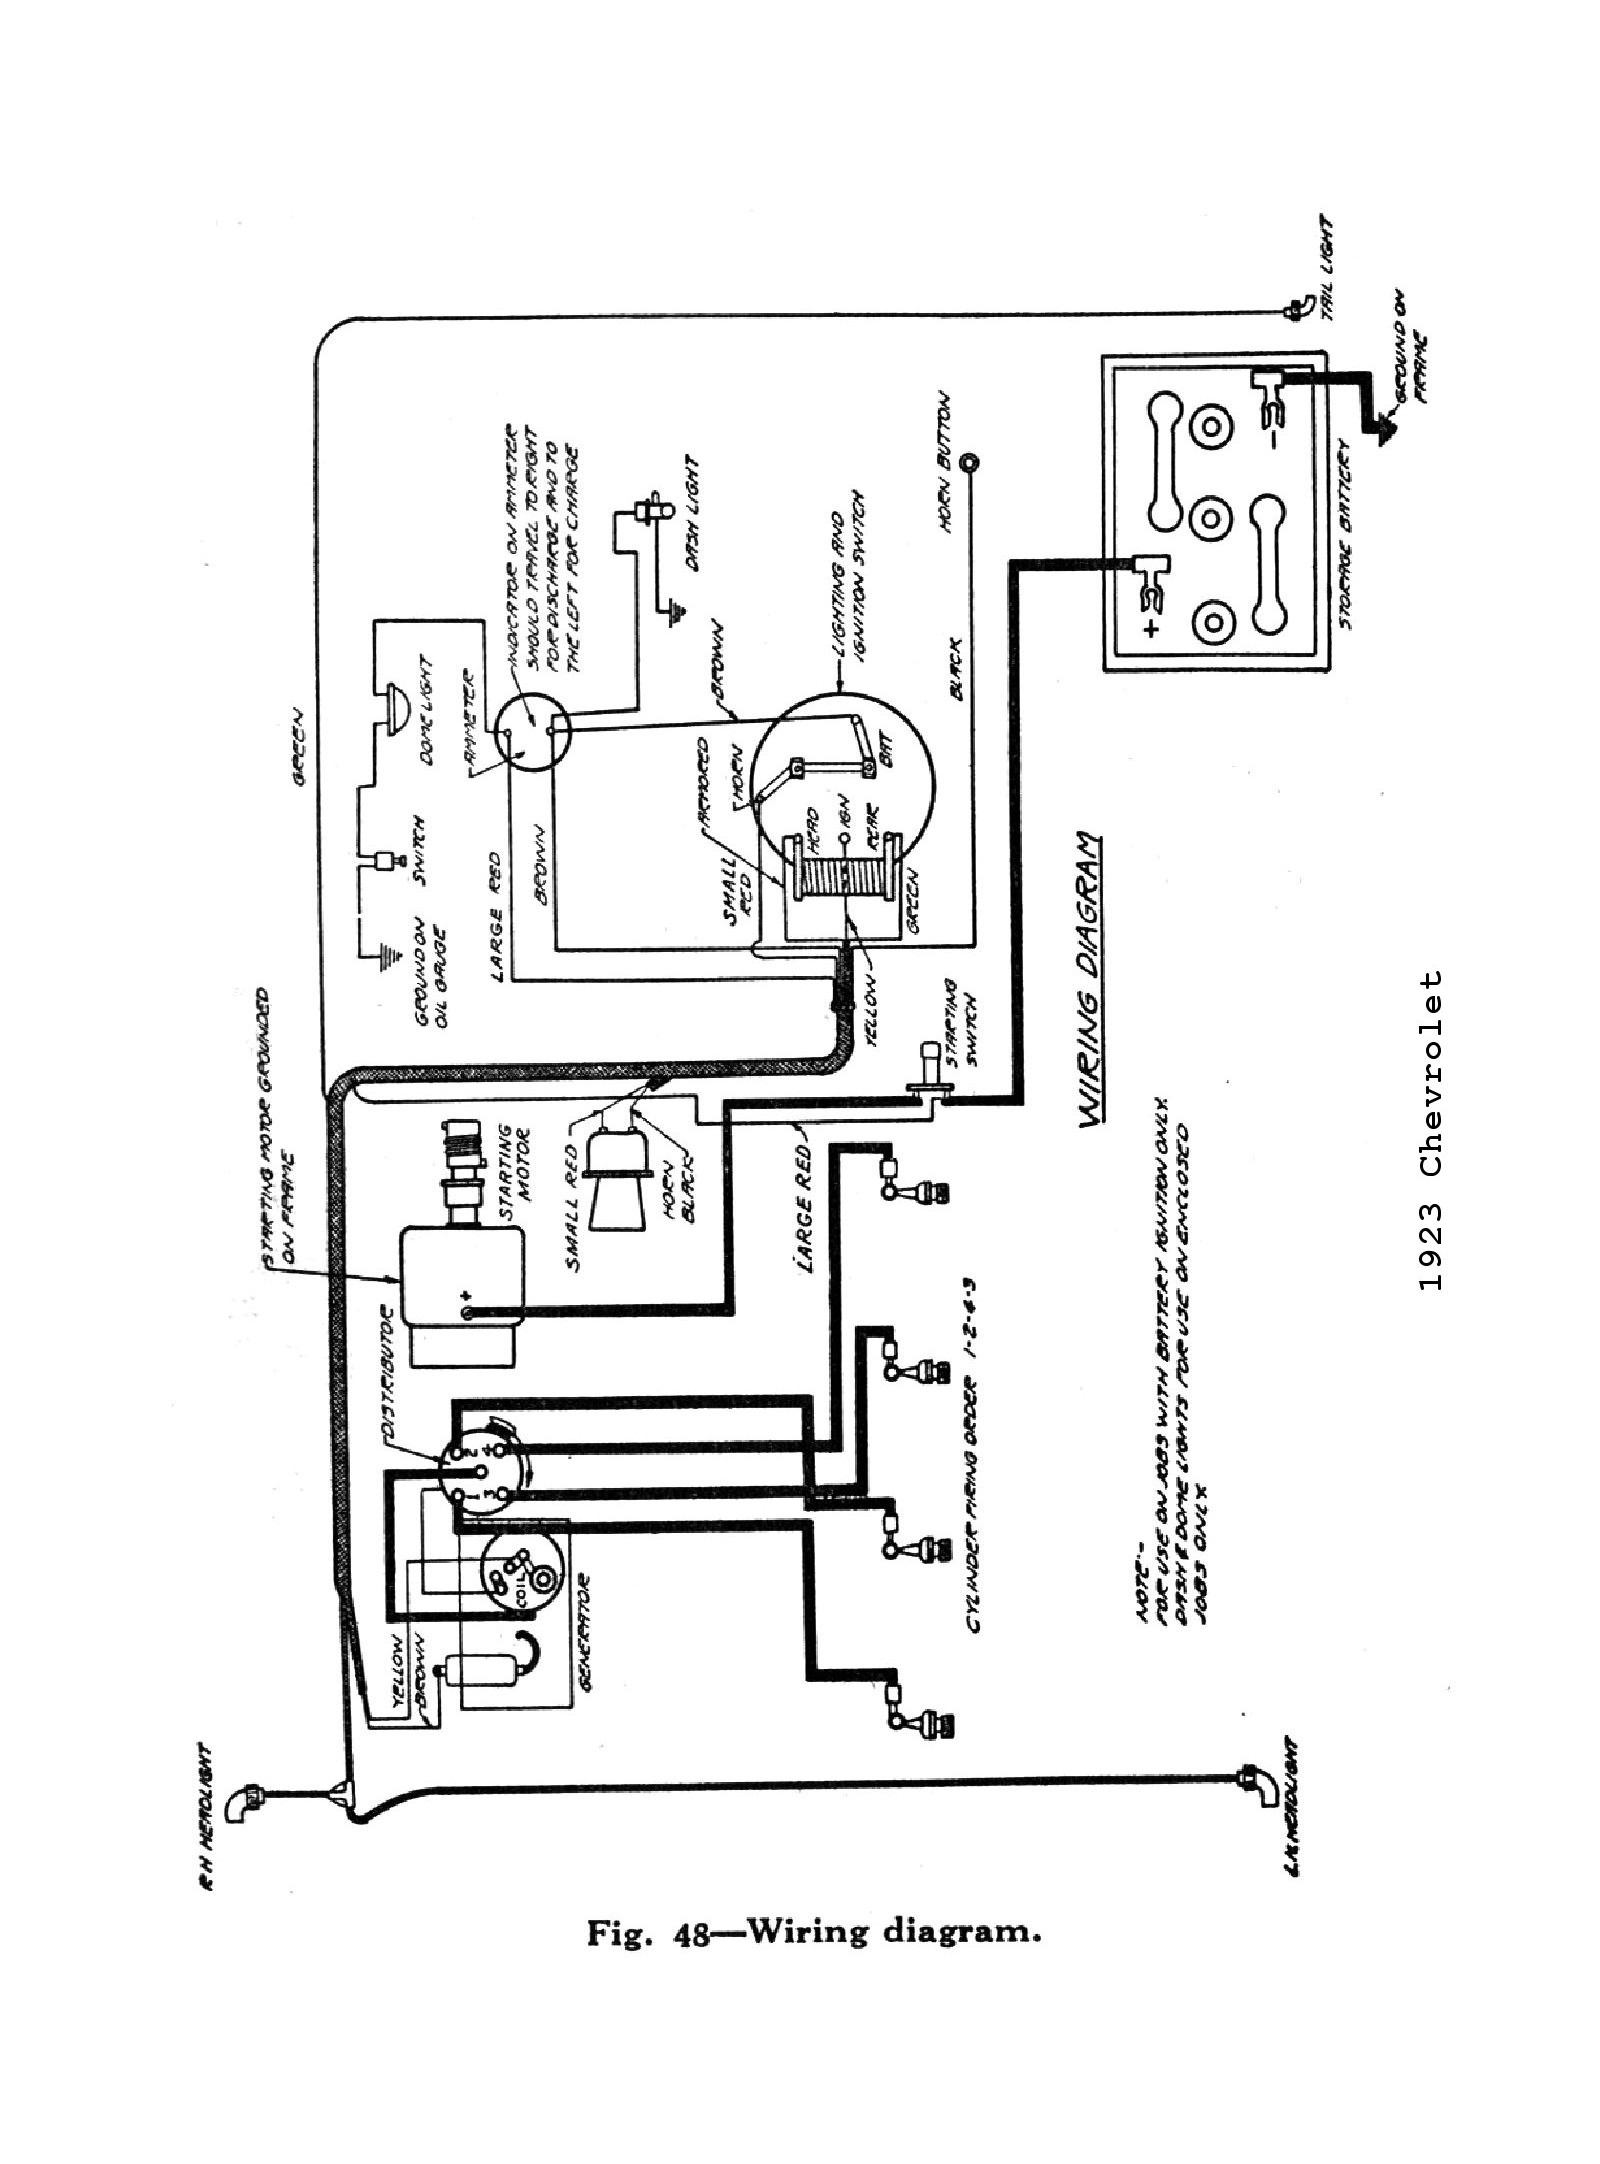 chevy wiring diagrams 1987 mustang radio wiring diagram 1967 mustang wiring diagram download